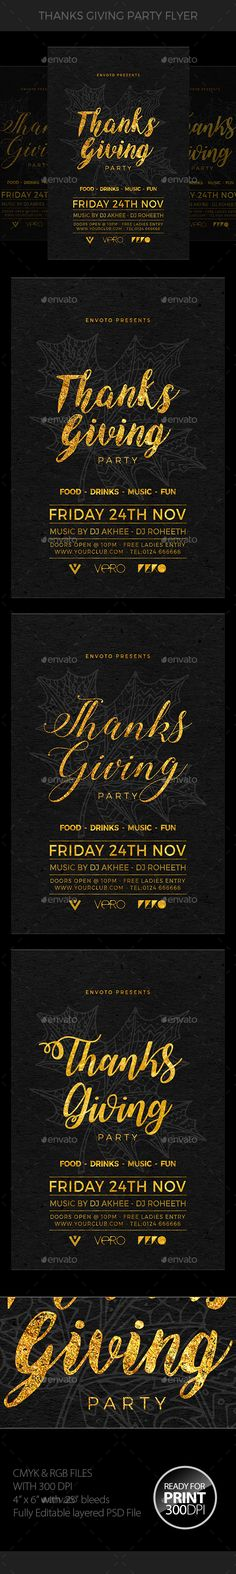 Thanksgiving Flyer  — PSD Template #inspiration #thanksgiving #thanksgiving bash • Download ➝ https://graphicriver.net/item/thanksgiving-flyer/18627906?ref=pxcr